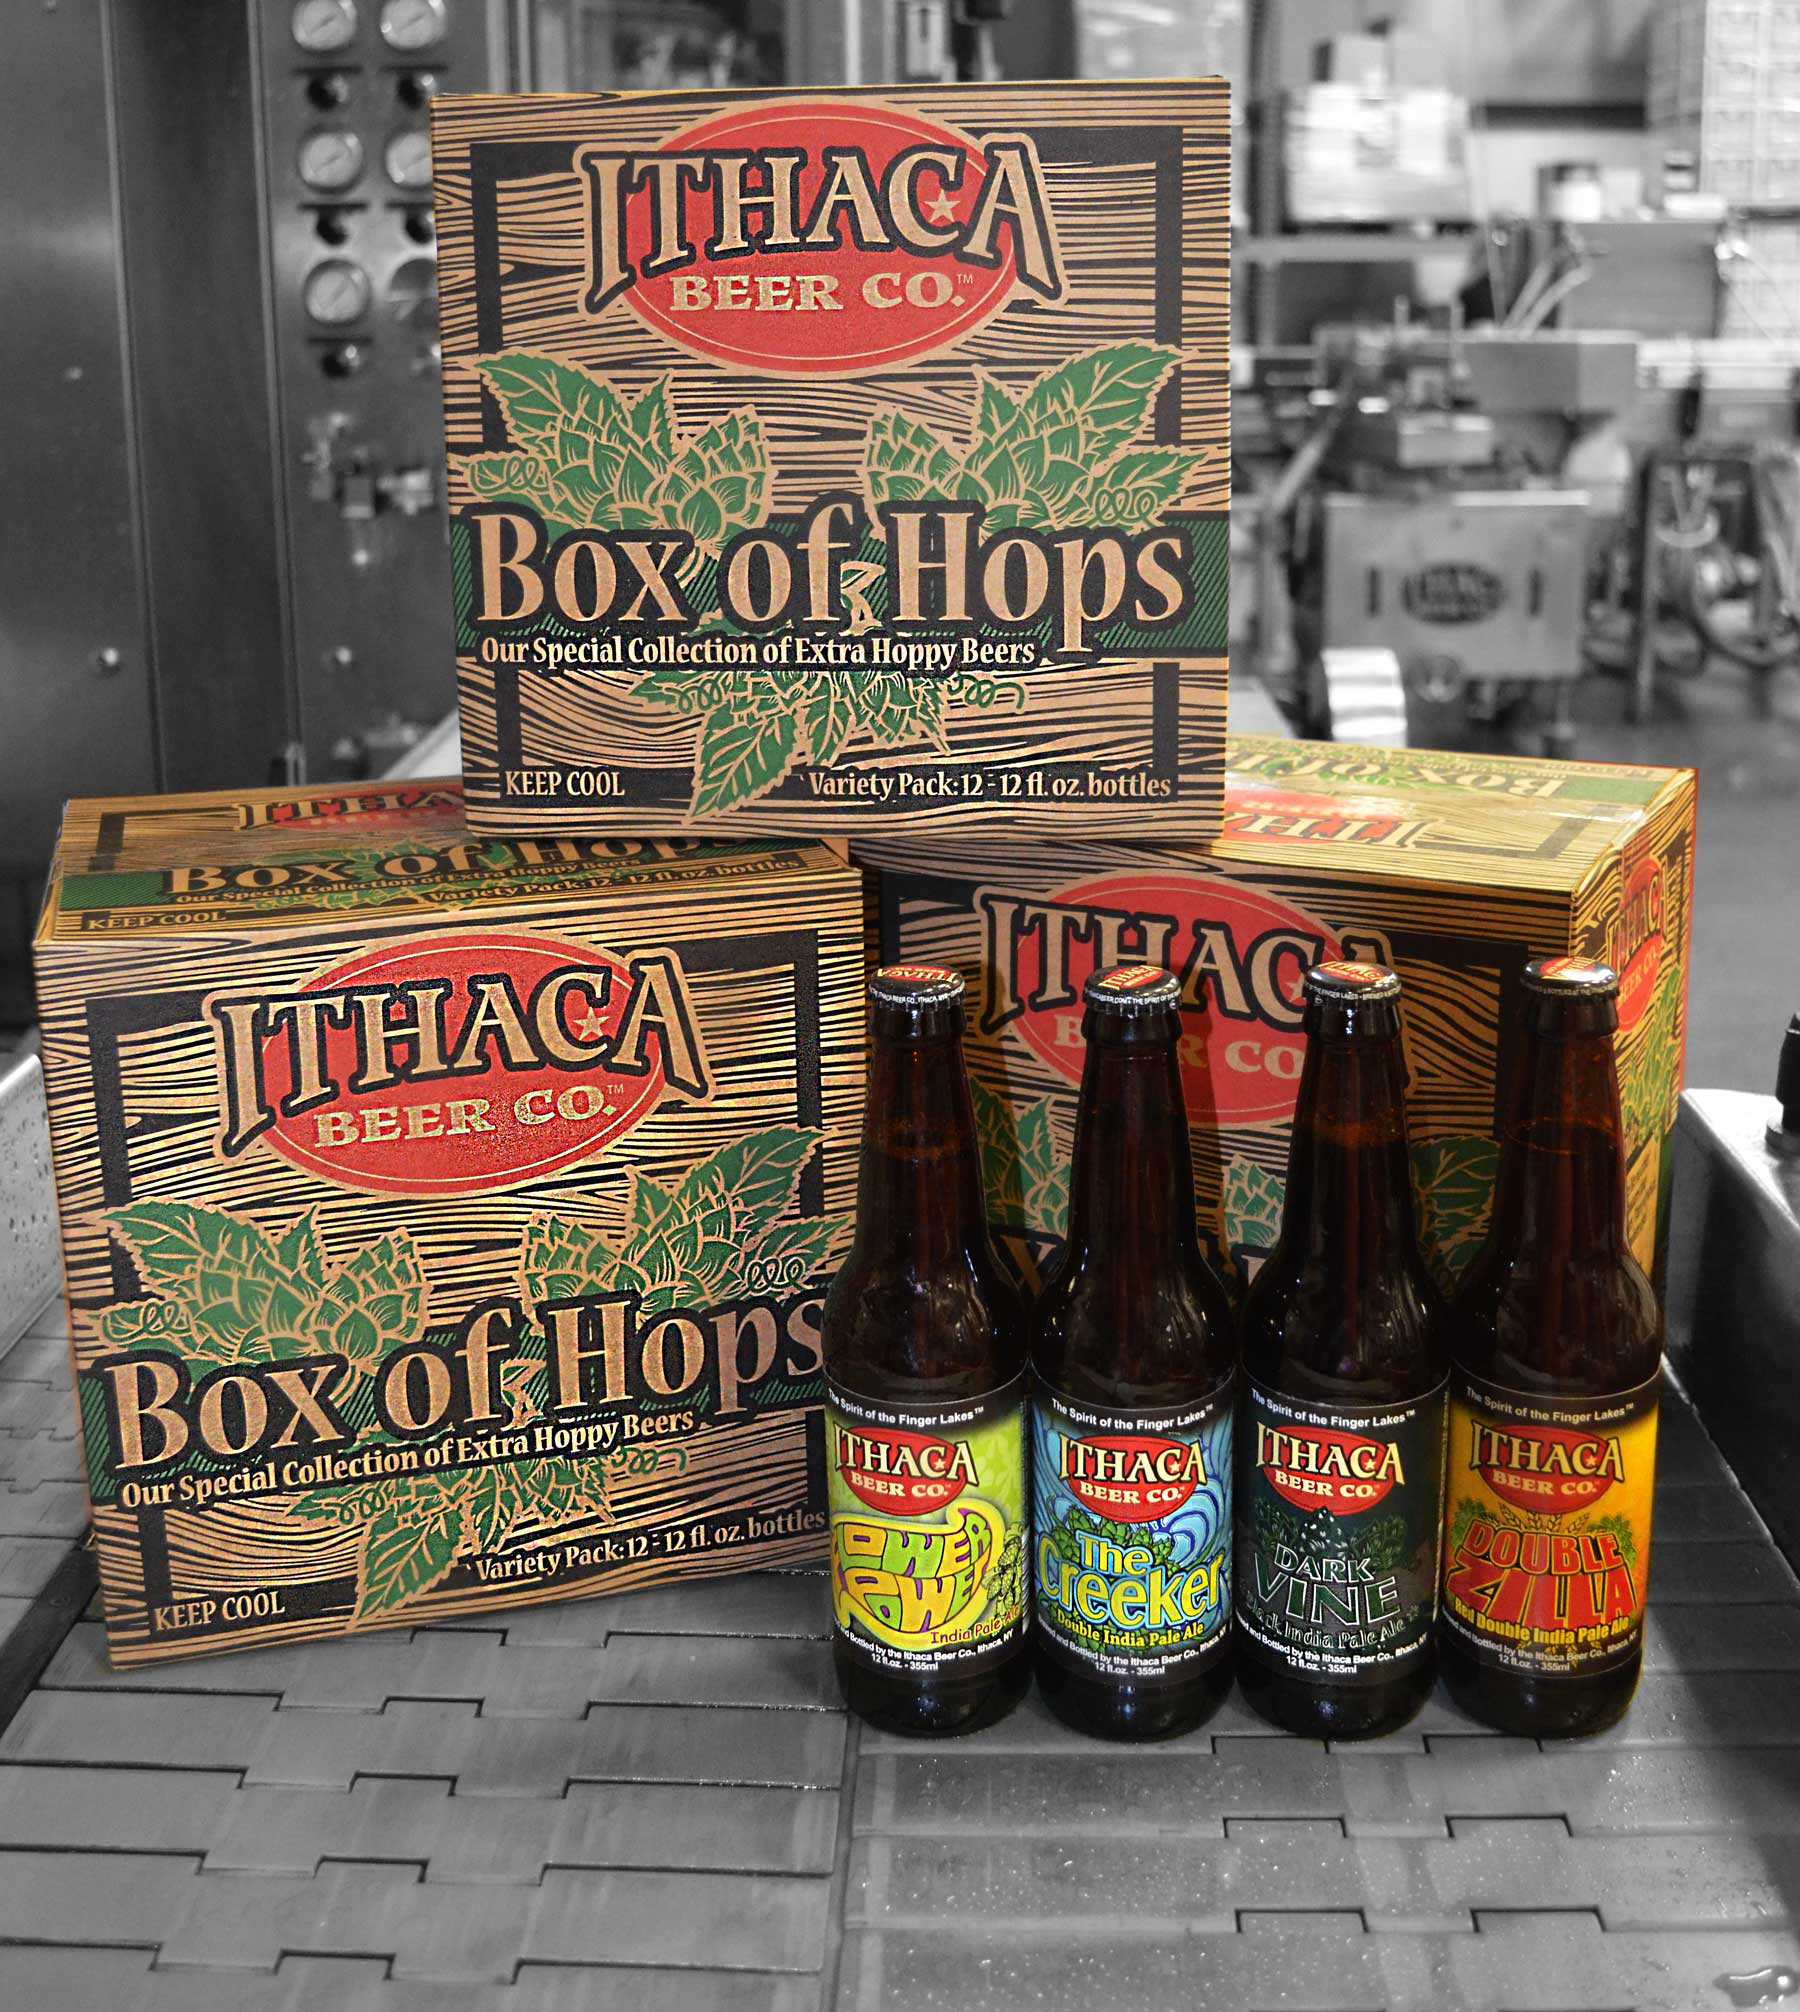 Introducing Ithaca Beer s latest hoppy release Box of Hops variety pack